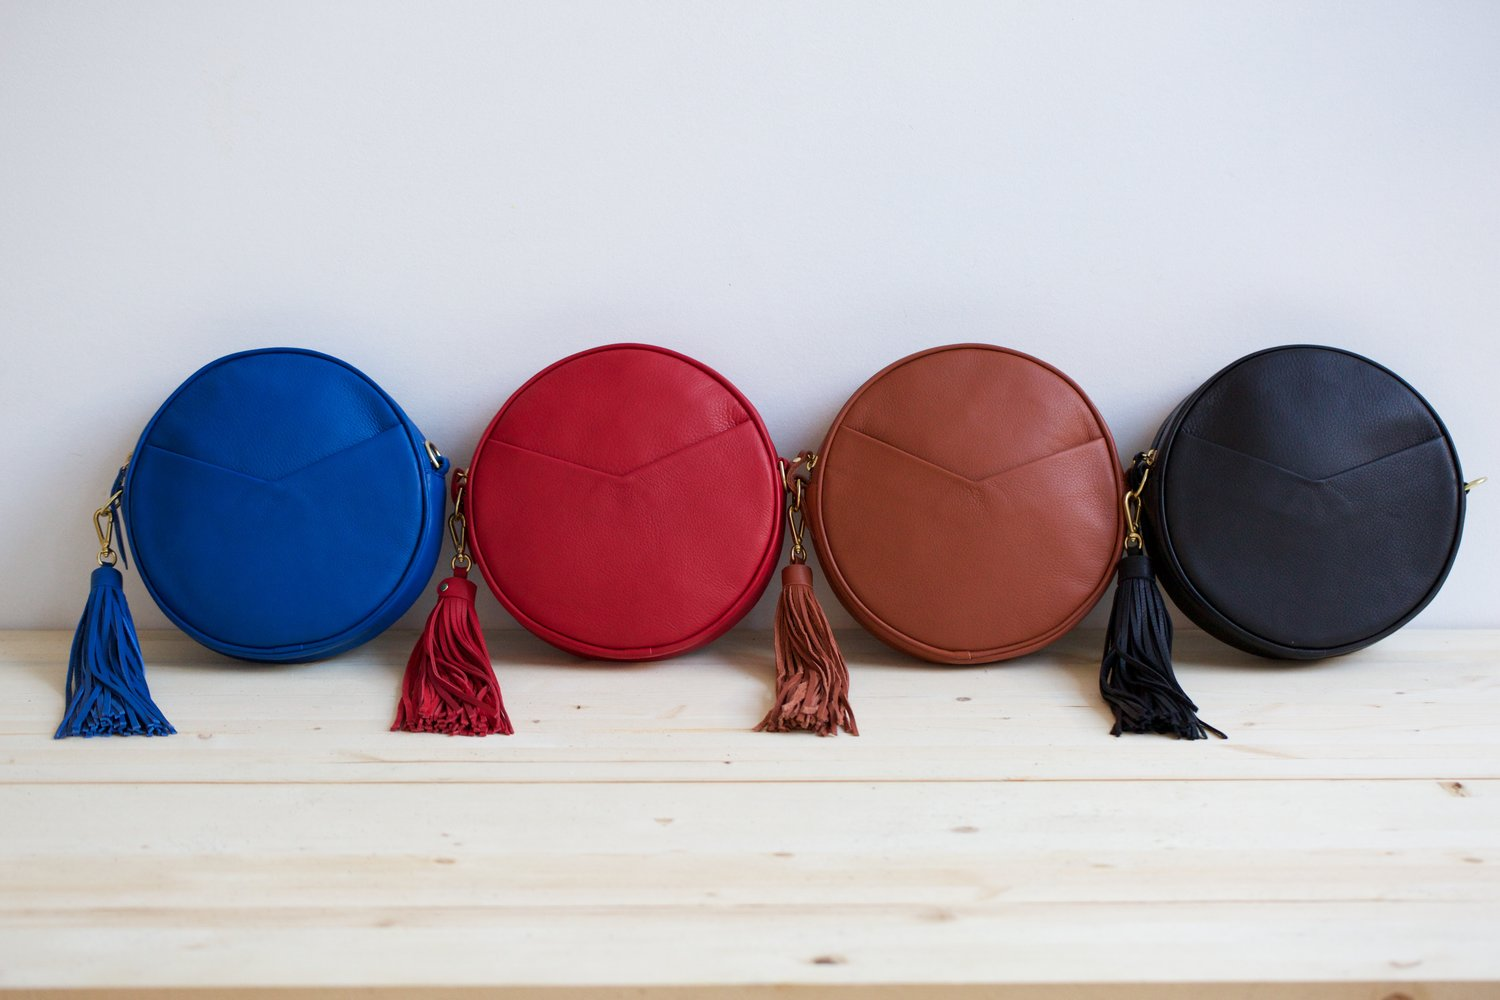 The Circle Bag is currently available in four colors - bold blue, pure red, cognac, and black.